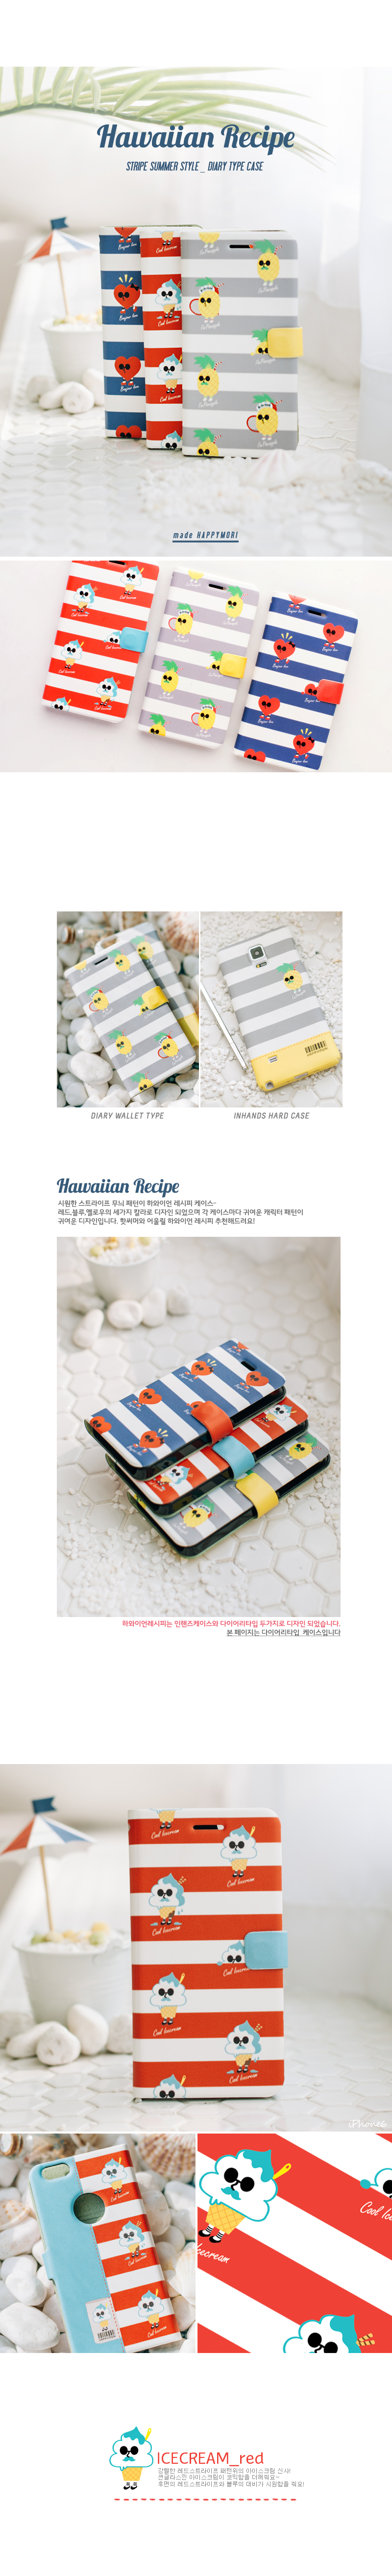 [HAPPYMORI] Flip Cover Case _ Hawaiian Recipe(iPhone4_4s,iPhone5_5s,iPhone6_6s)